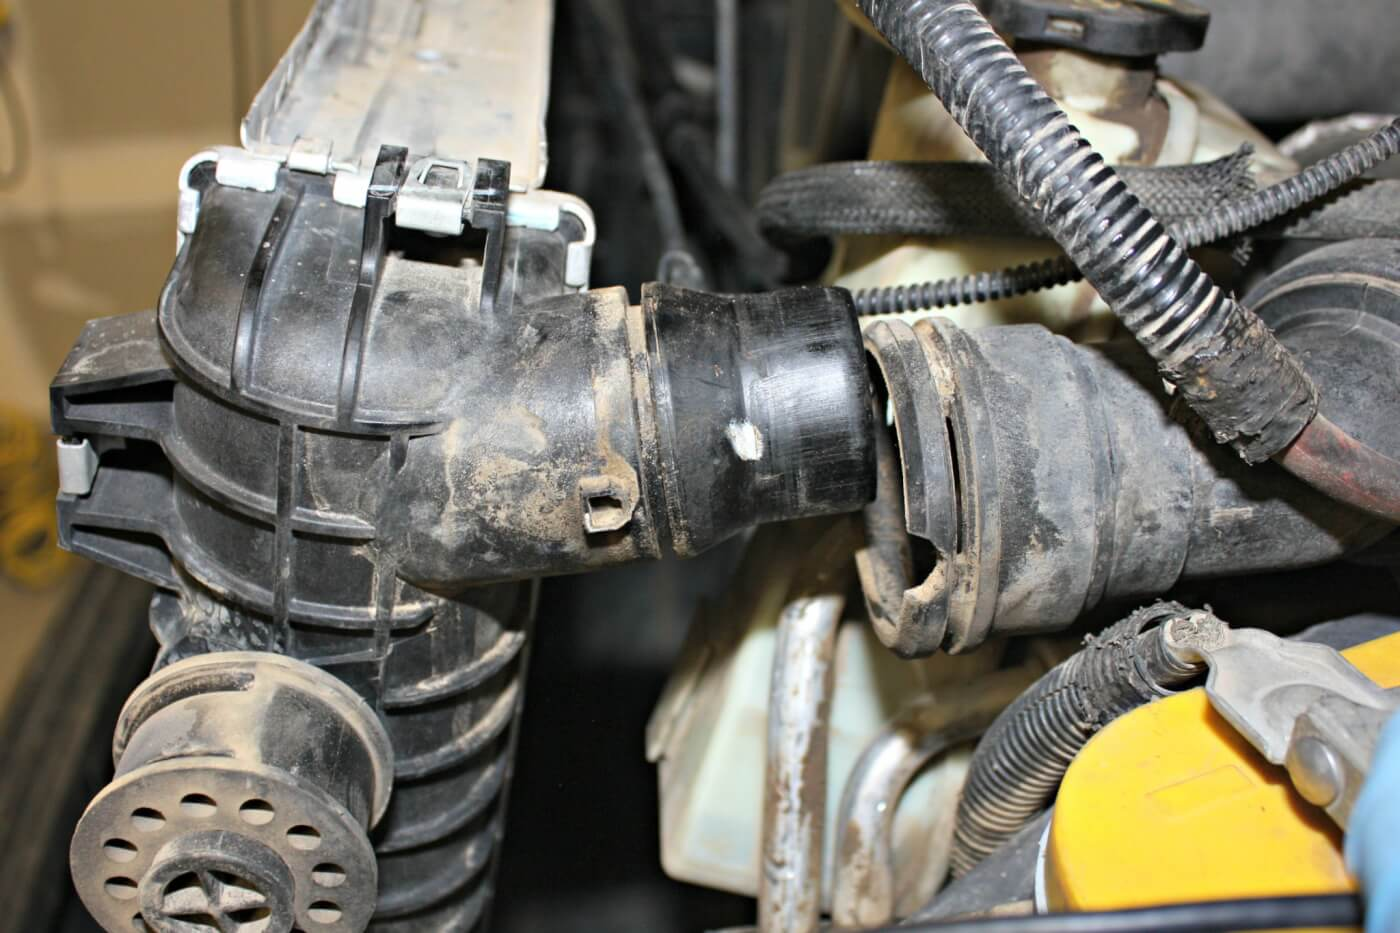 9. The factory coolant hoses can be disconnected from the radiator by simply sliding out the small metal U-clips with some pliers. Even though the radiator was drained, the lower radiator hose will still be full of coolant, so by disconnecting it from the radiator and not the engine, you should be able to avoid taking an antifreeze bath.